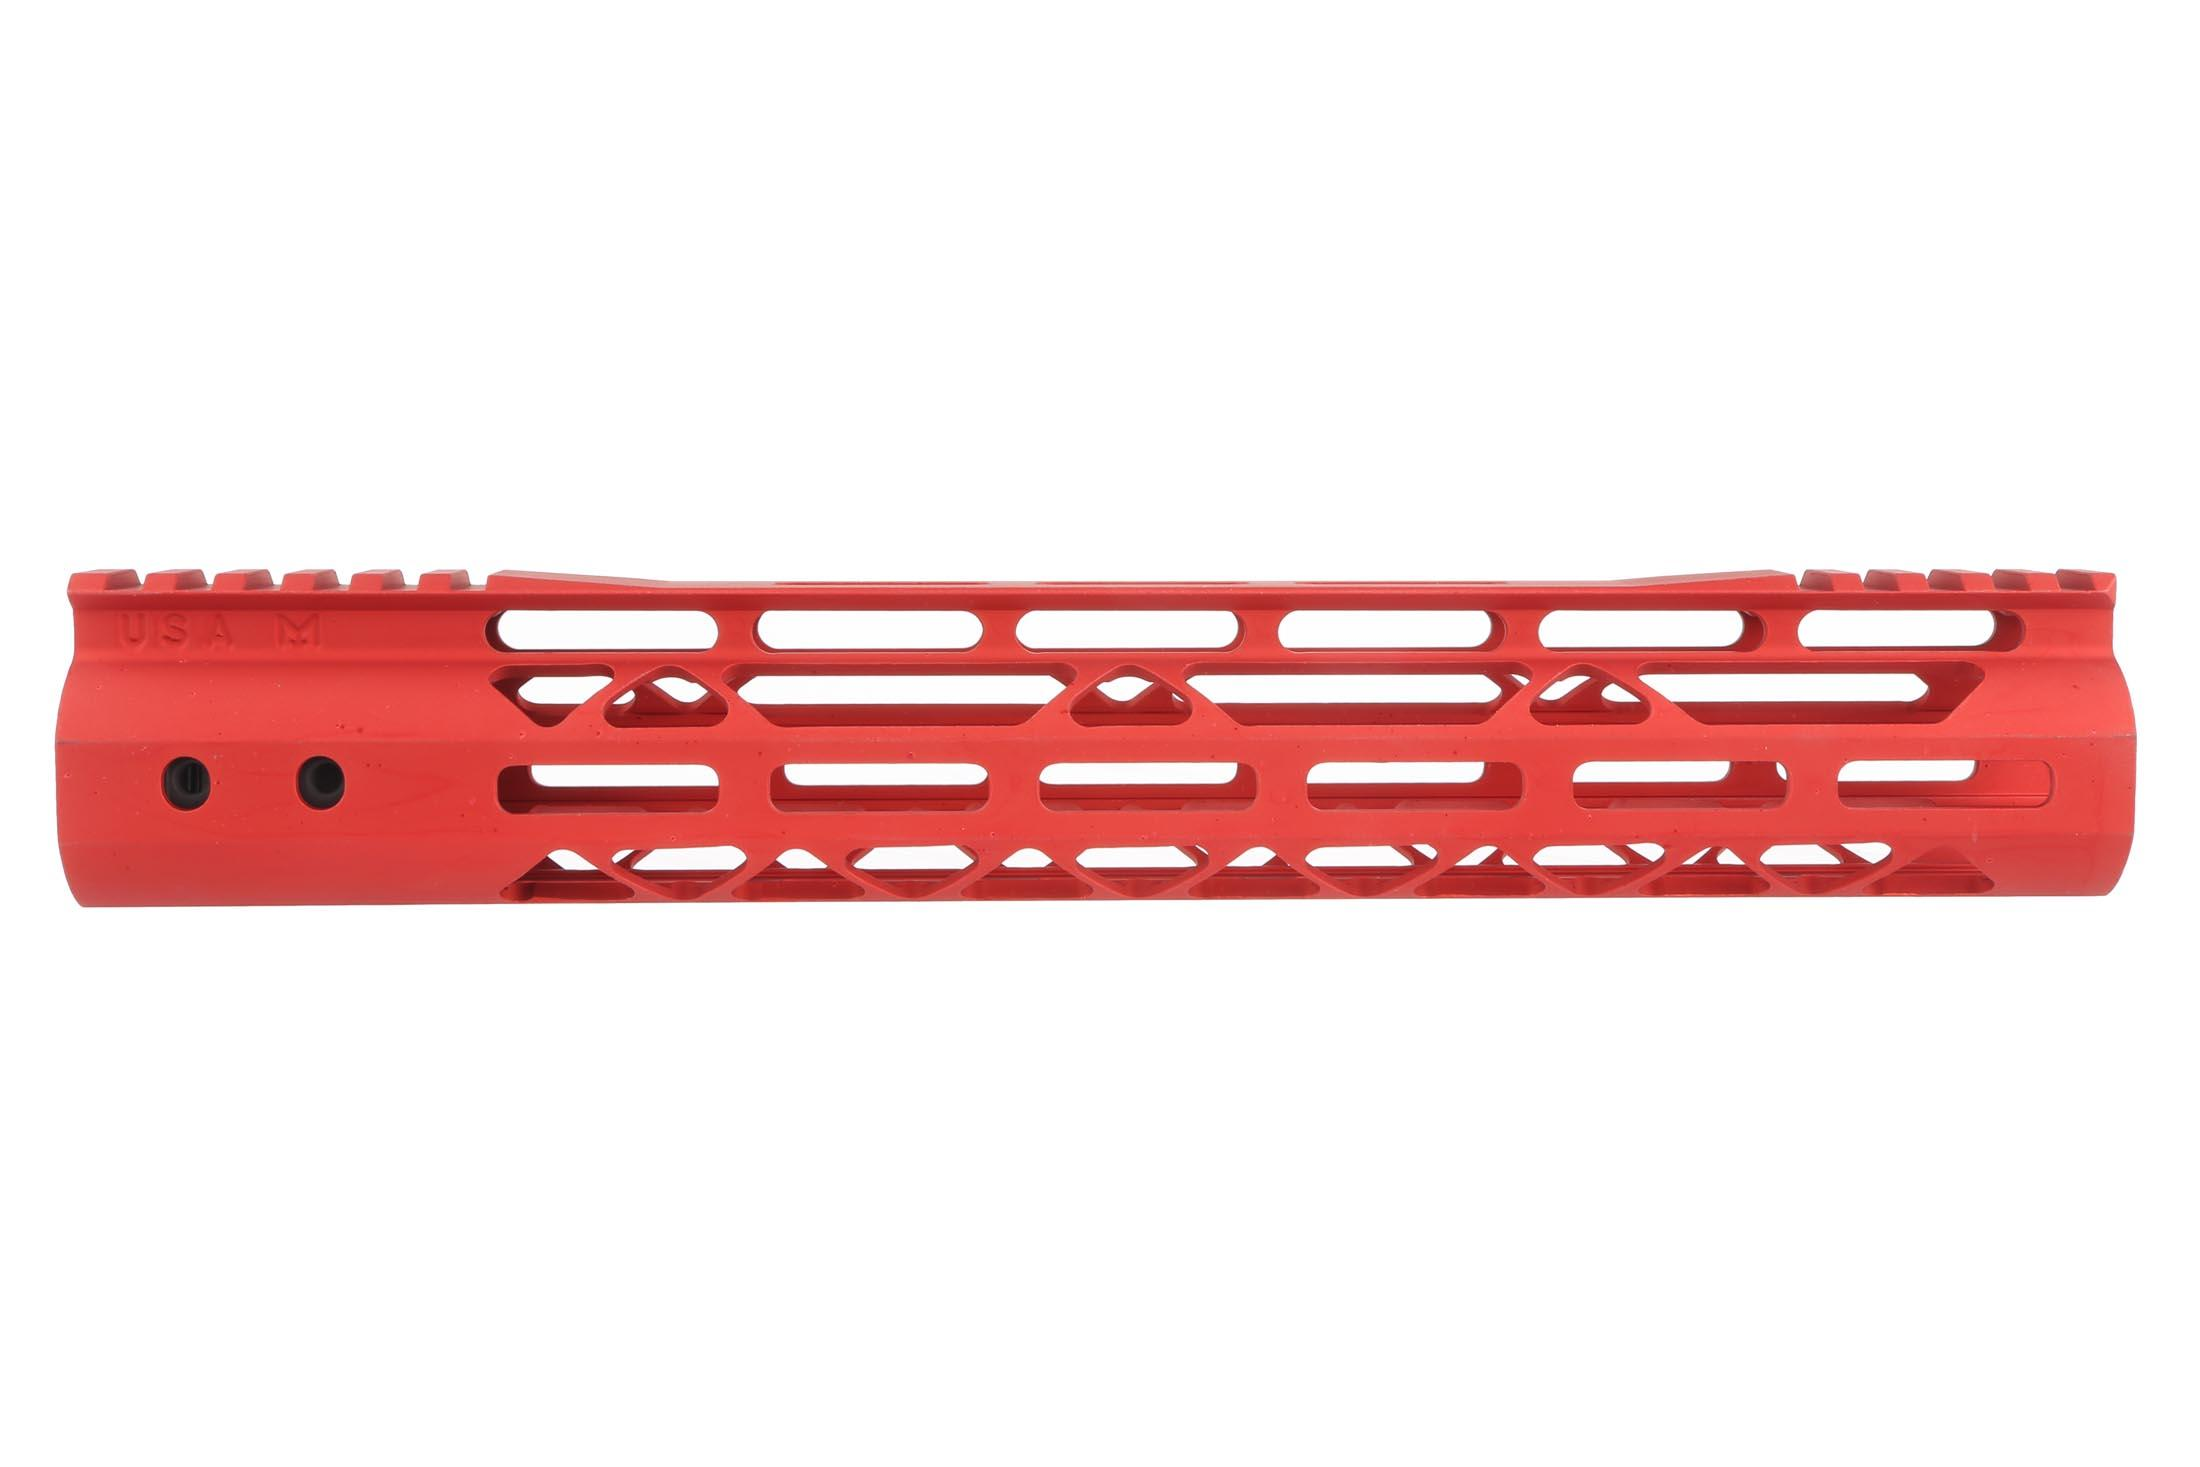 Guntec USA 12 MOD Lite Skeletonized Handguard - M-LOK - Red